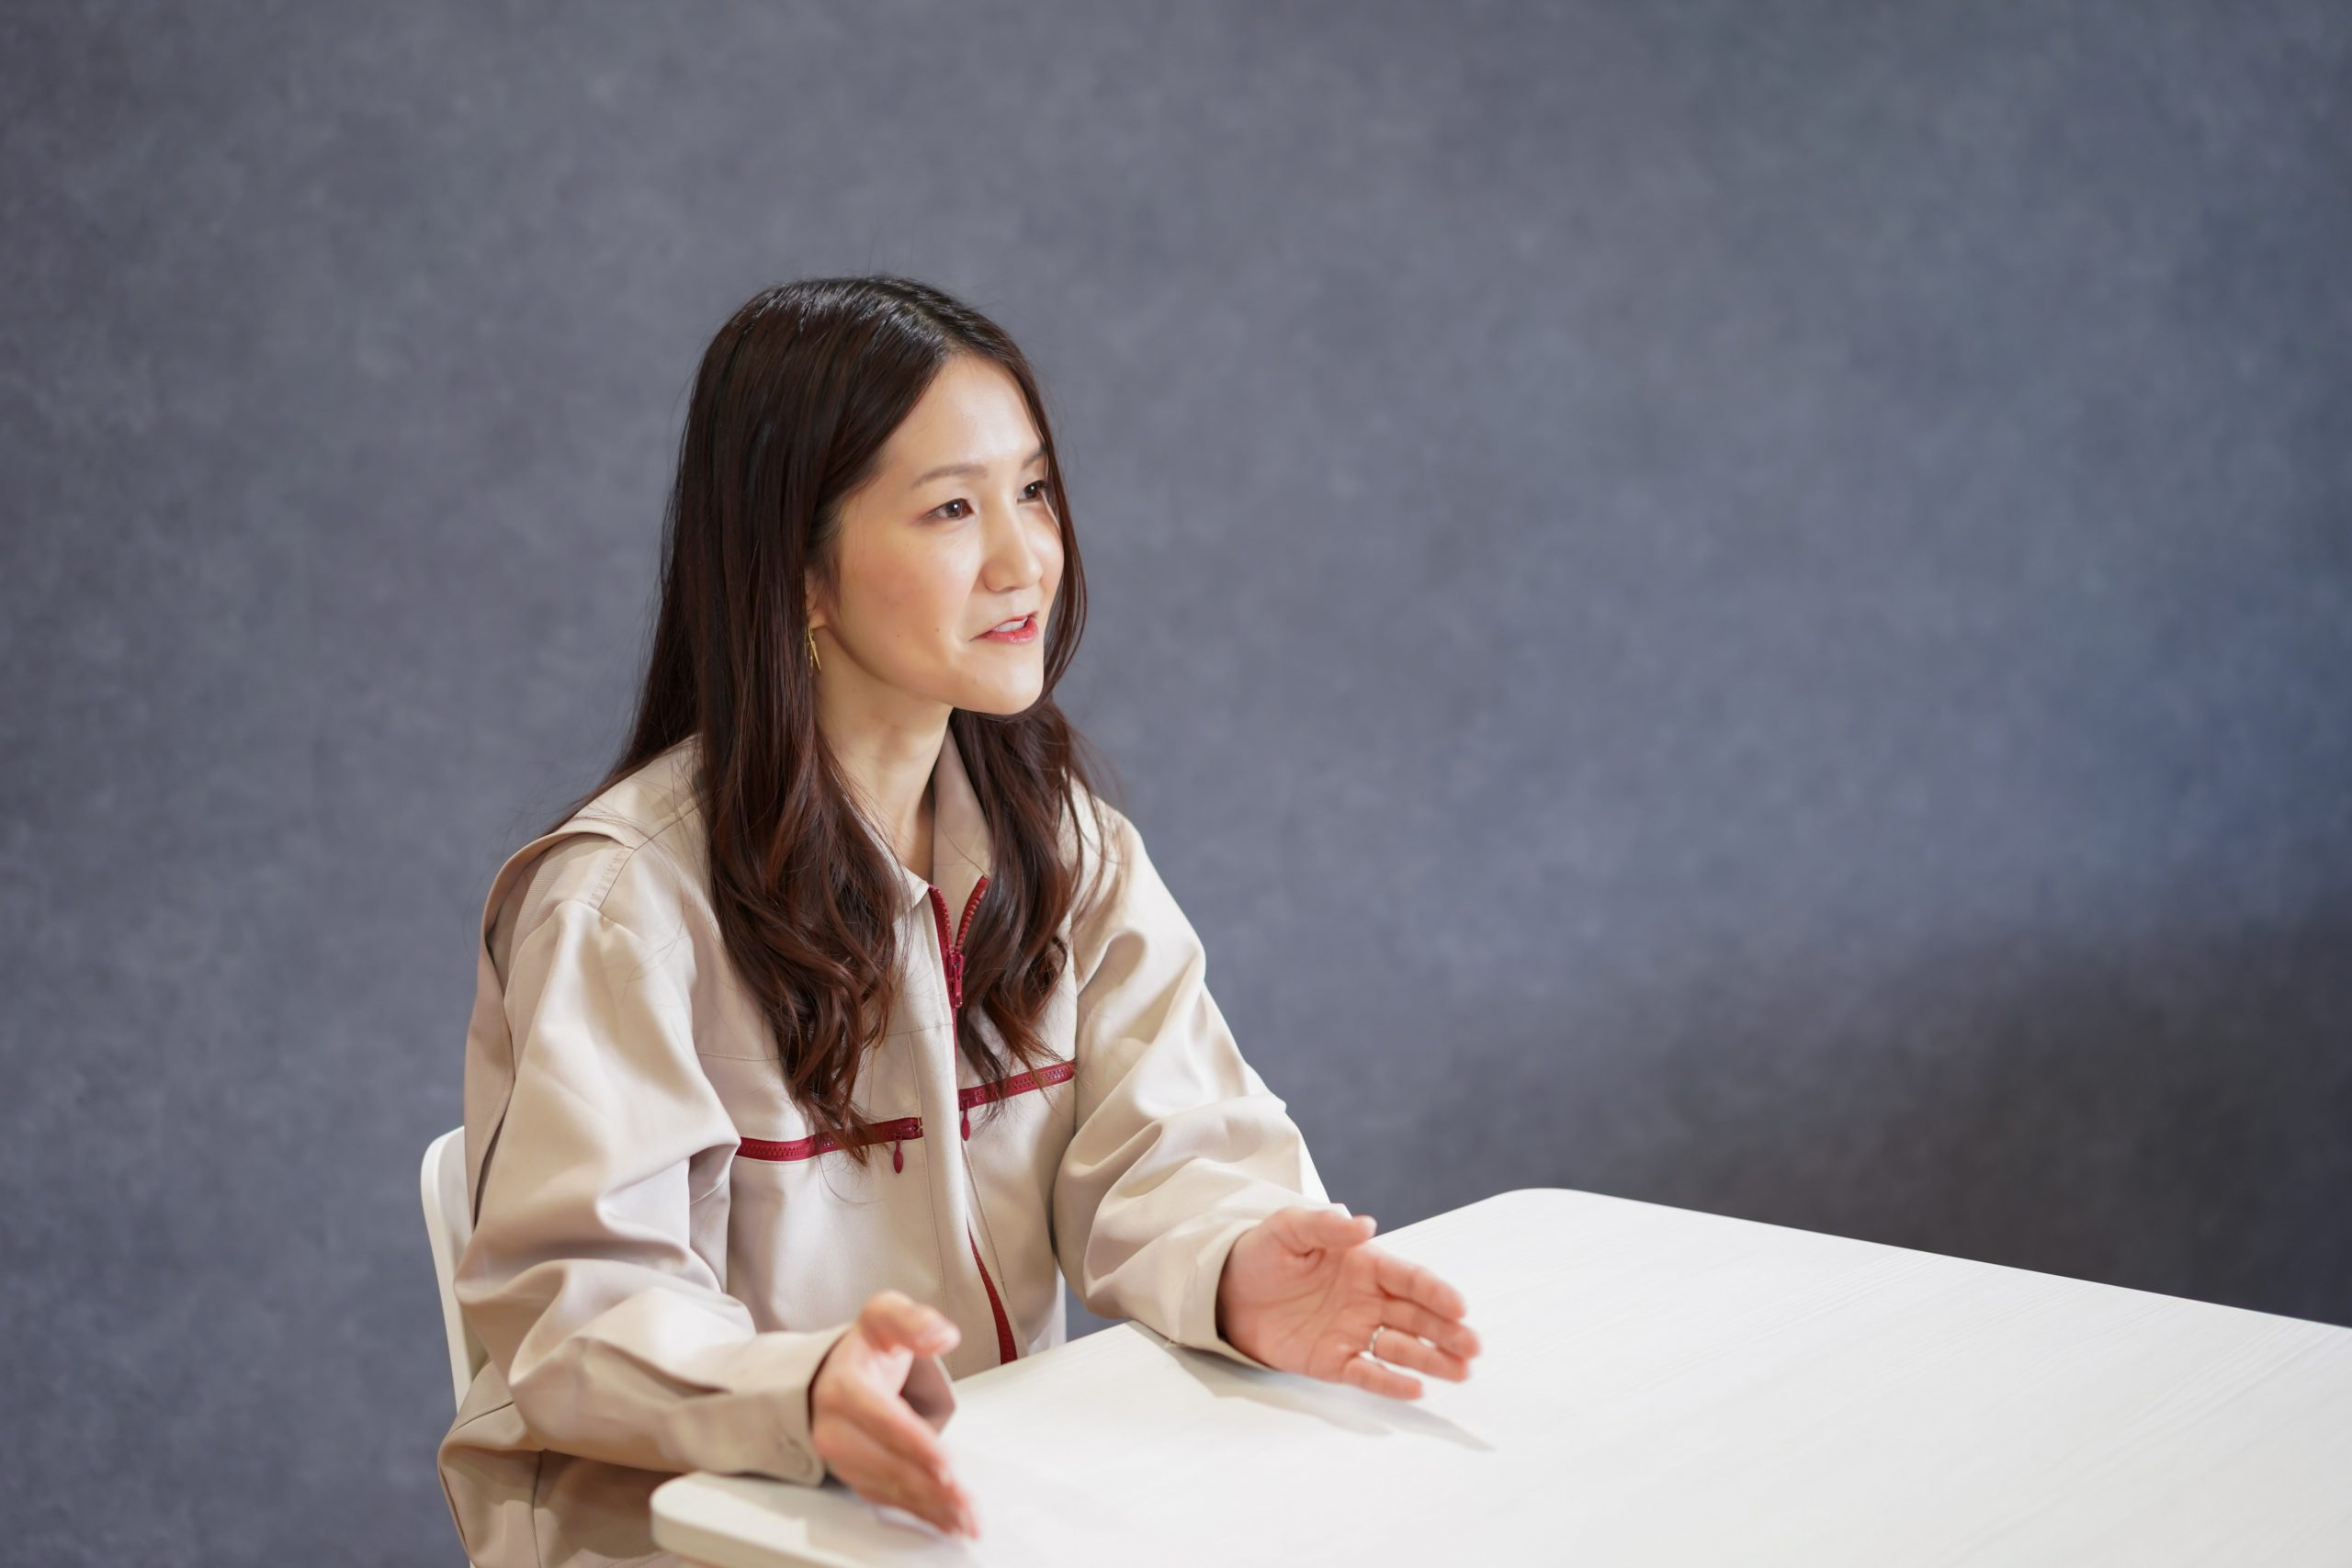 Image of Ide during the interview 2